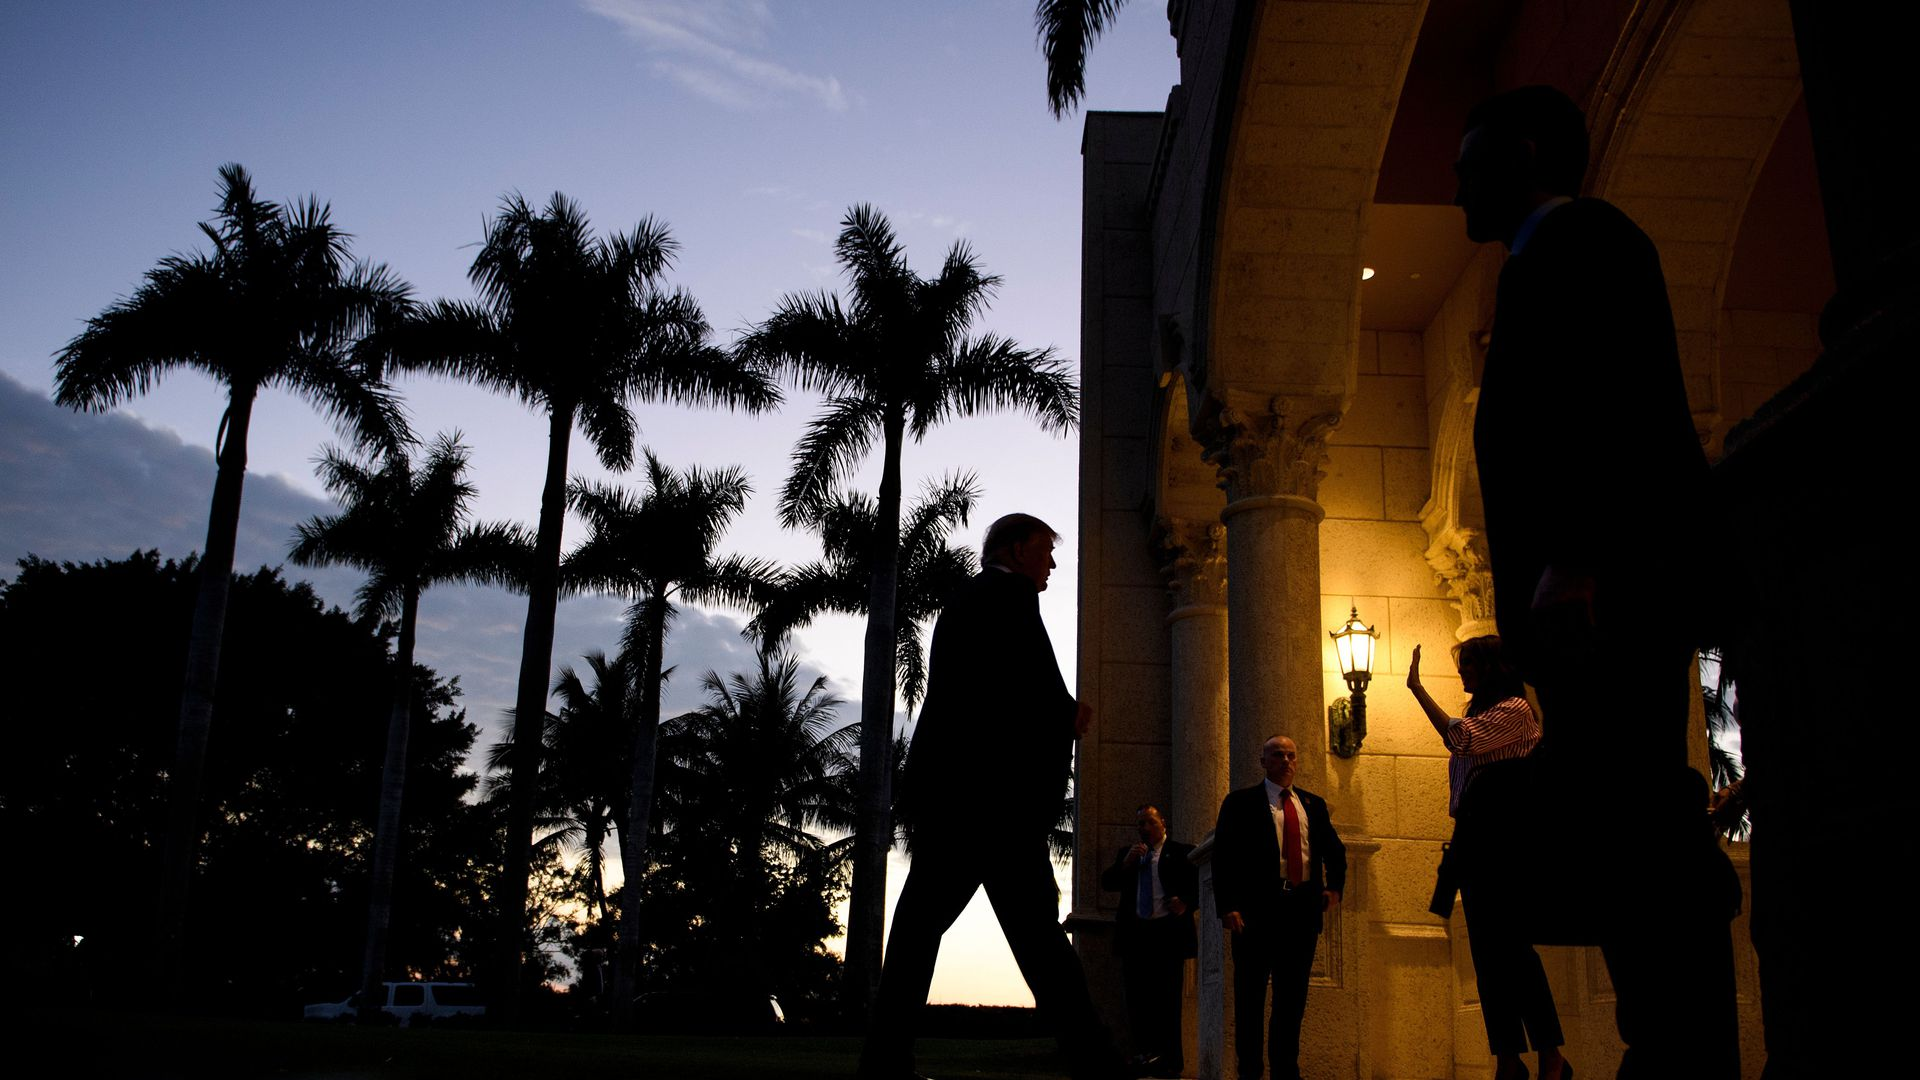 This photo shows Donald Trump walking in Florida, with palm trees in the background as the light fades.